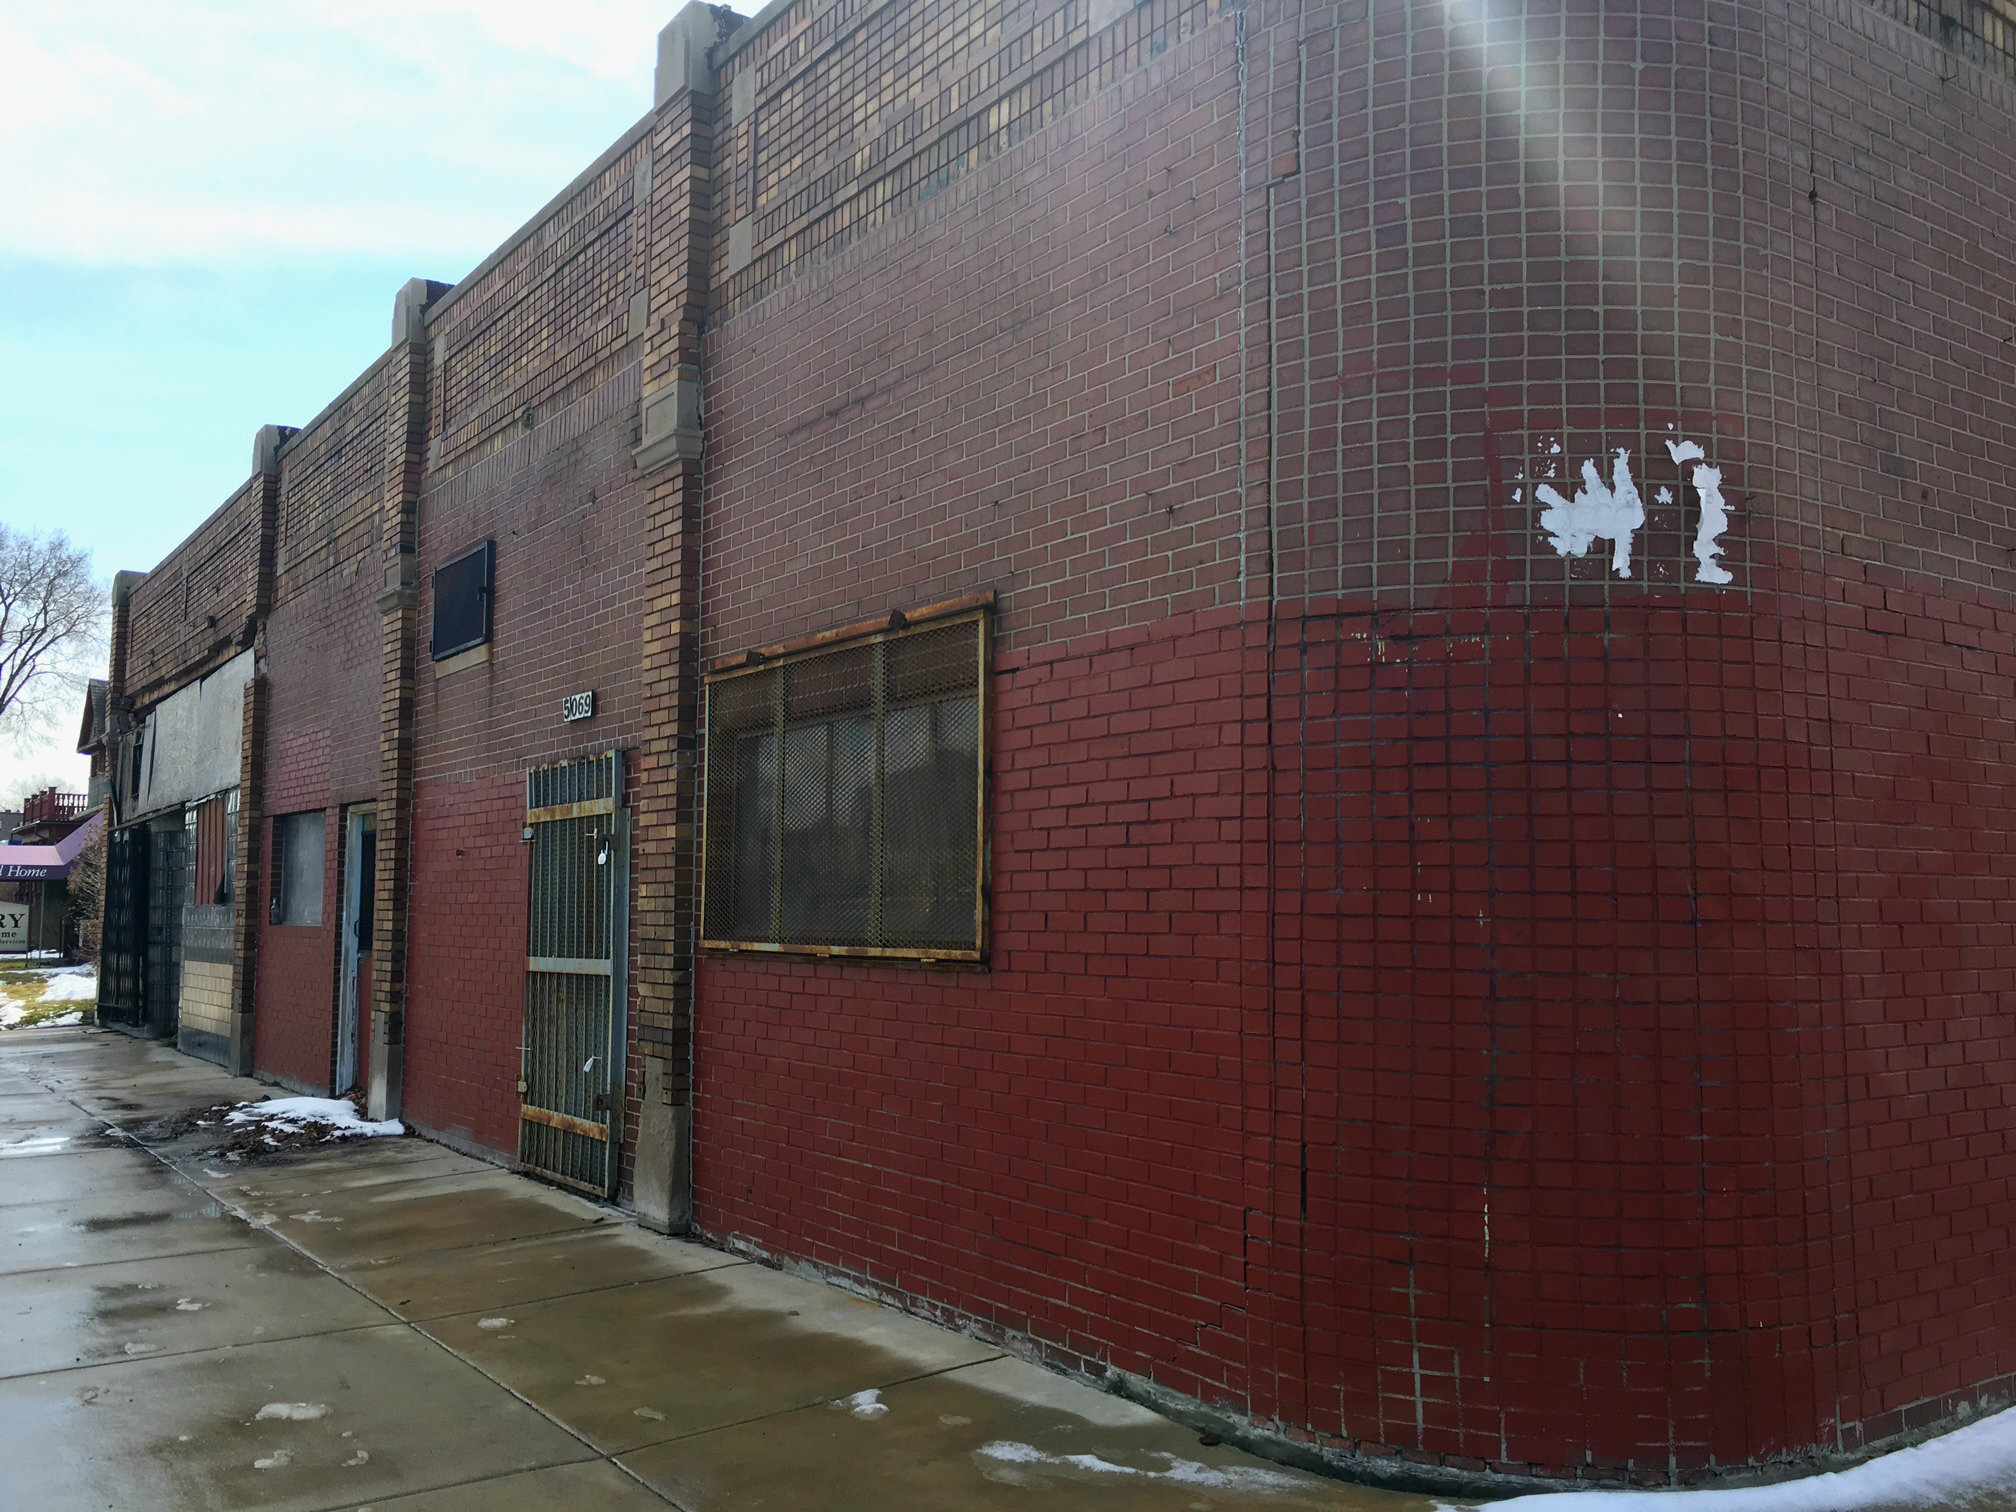 Woodbridge Bikes & Coffee will occupy two spaces in this corner building on Trumbull Avenue.